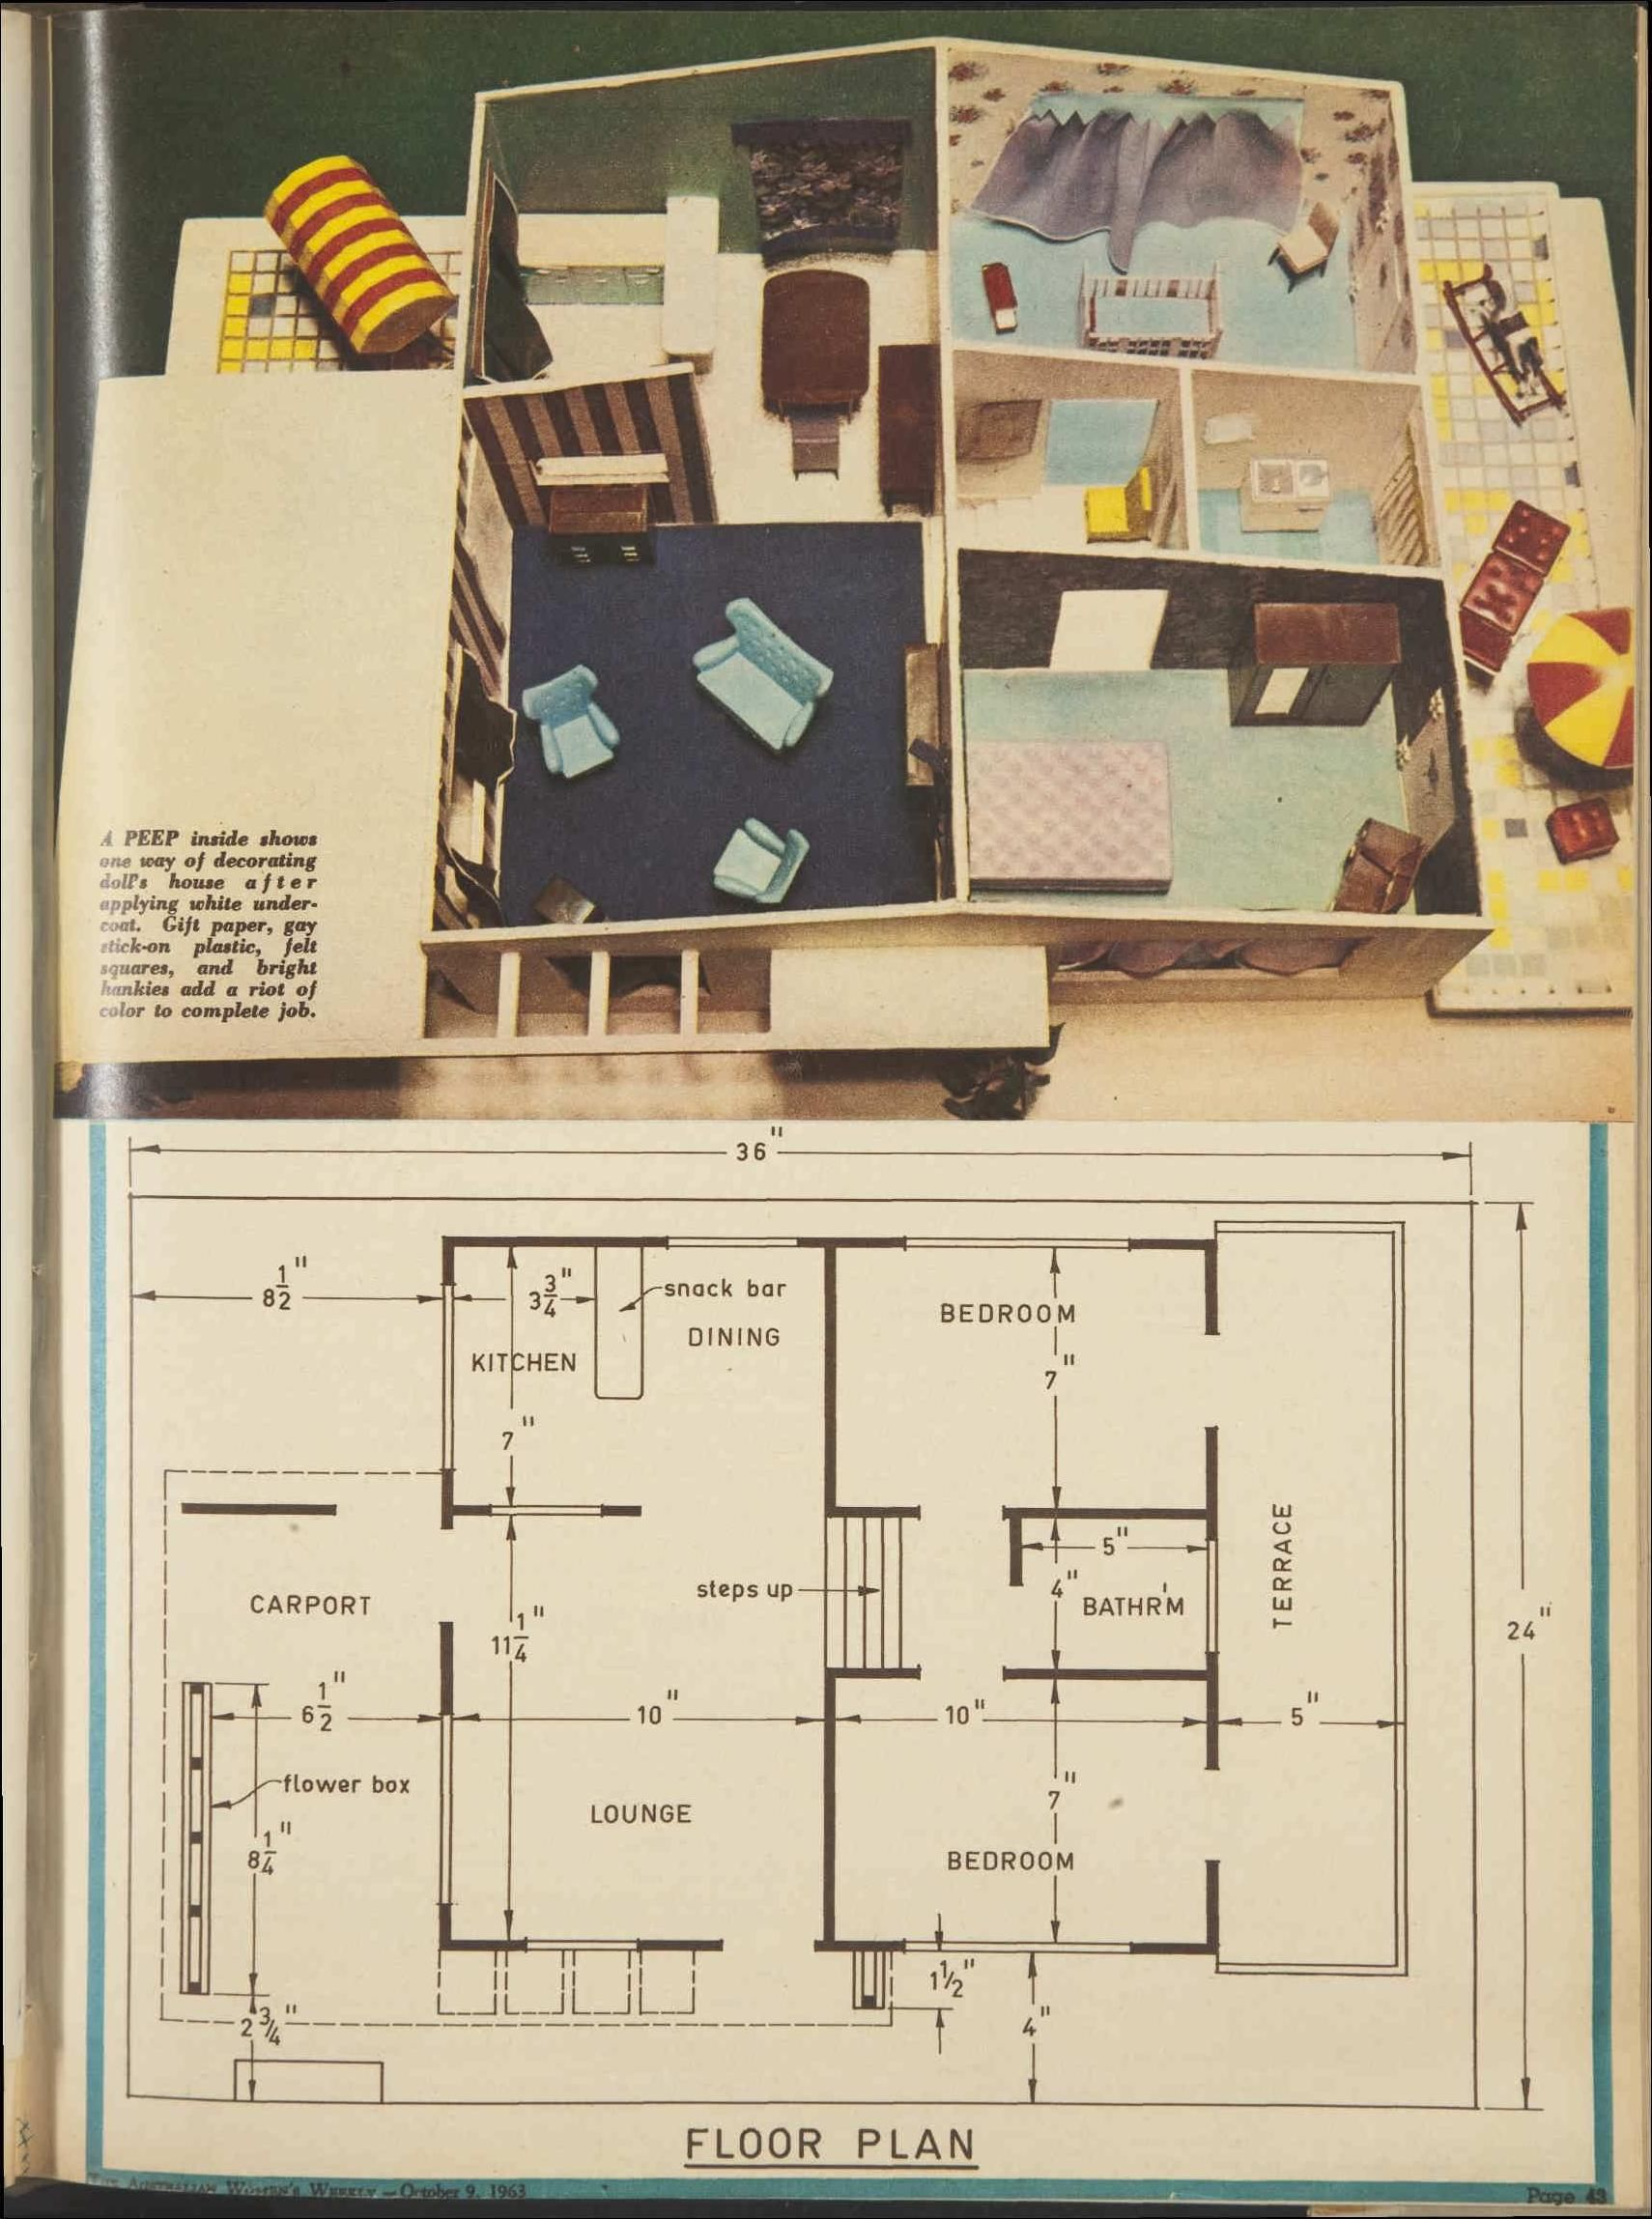 house plan Plans for a splitlevel 1960s doll's house 9